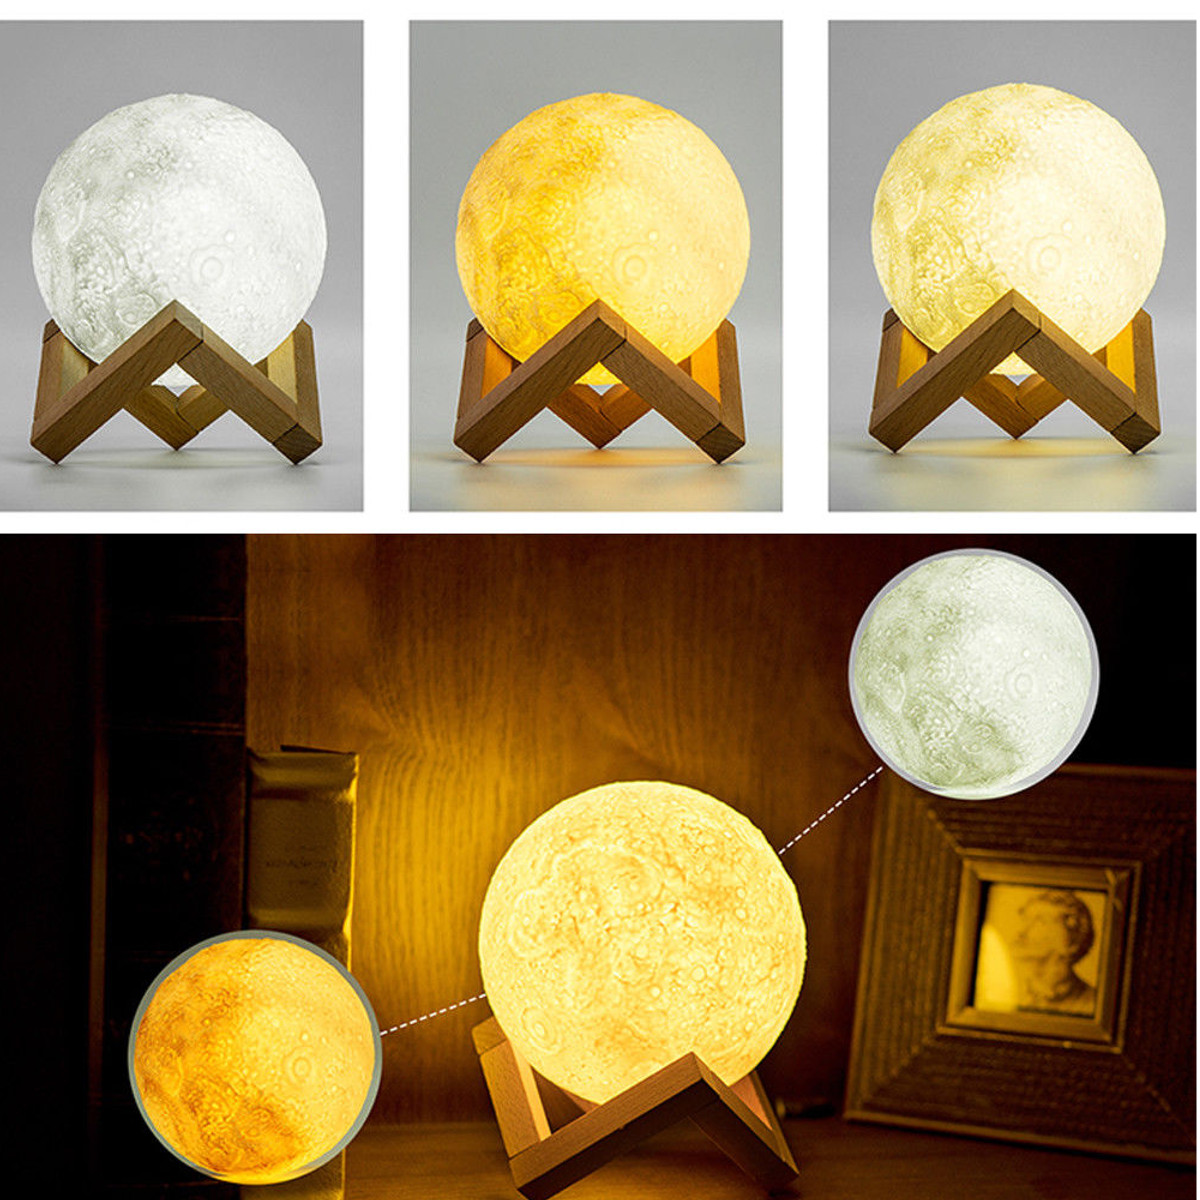 8/10/12/15 CM 3D LED Magical Moon Night Light Moonlight USB Table Desk Moon Lamp Kids Christmas Gift(Color:White/Colorful/Yellow)